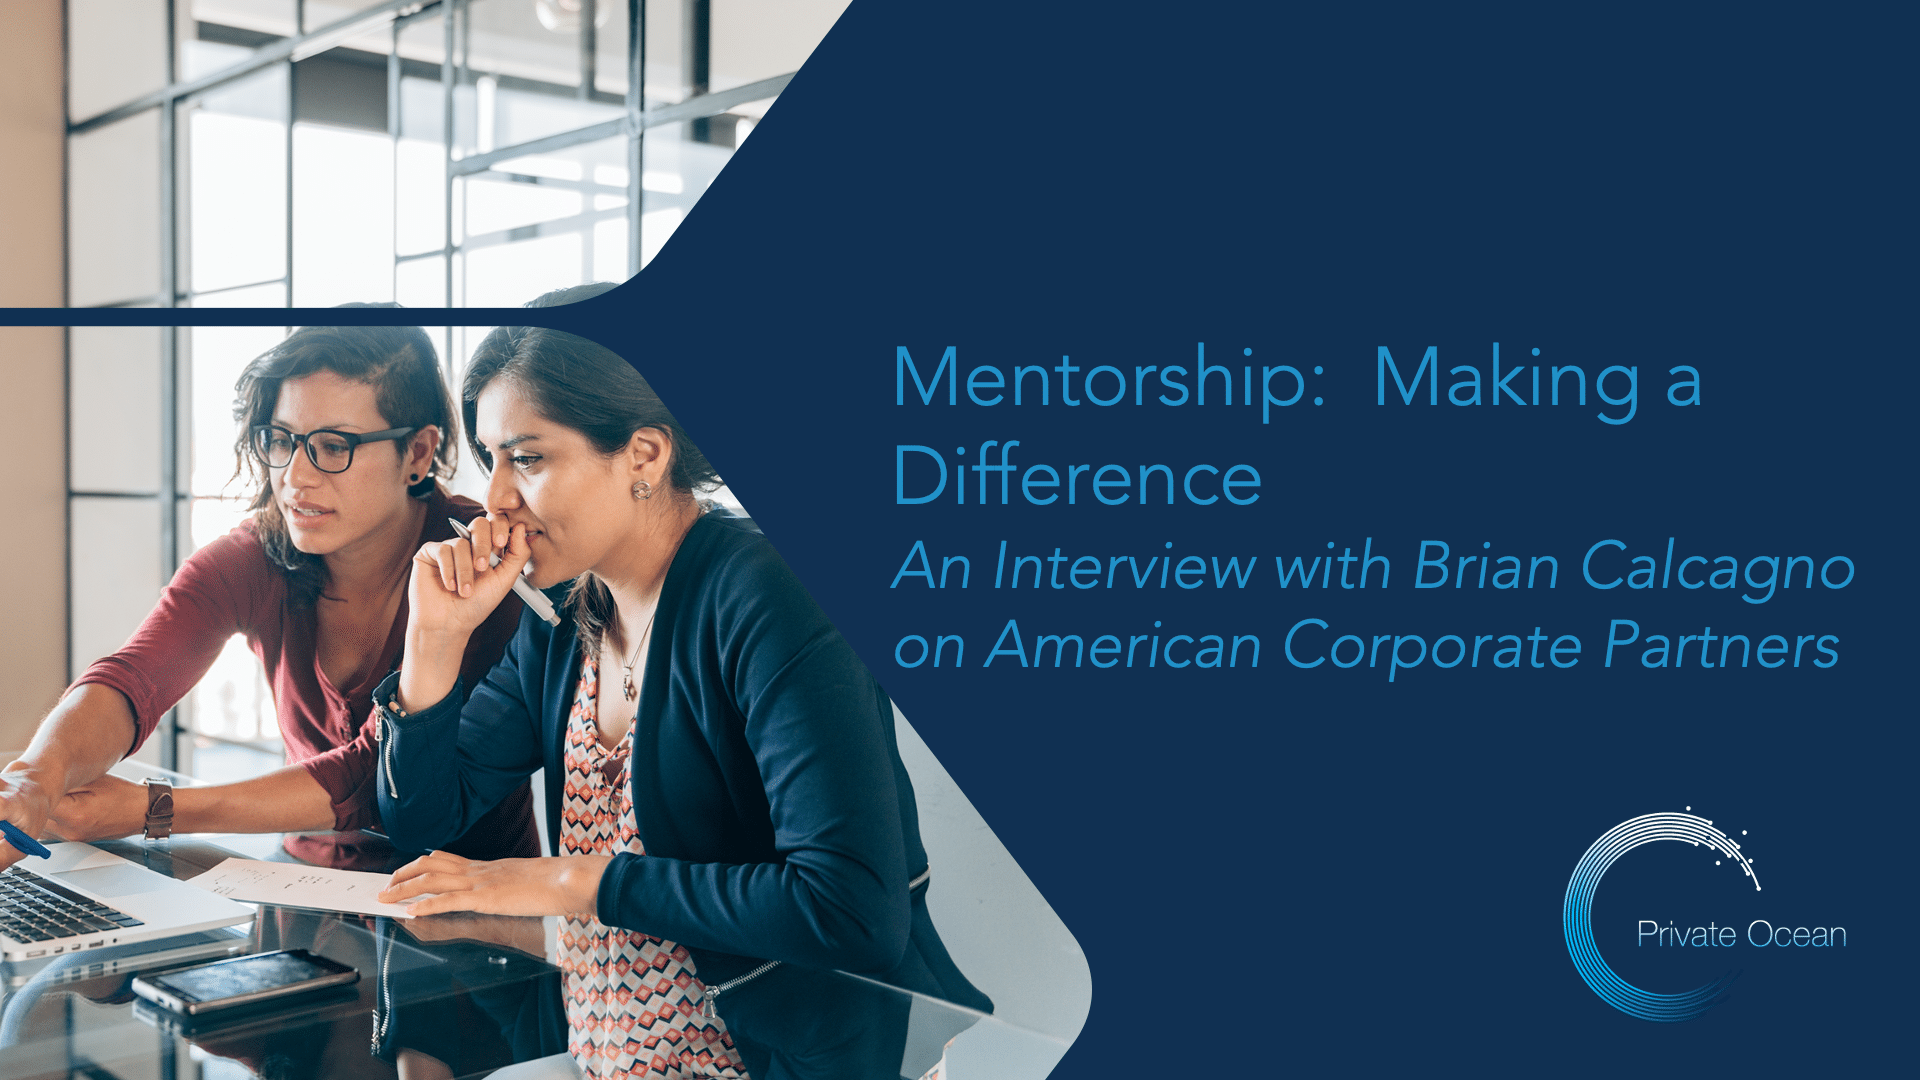 Mentorship: Making a Difference